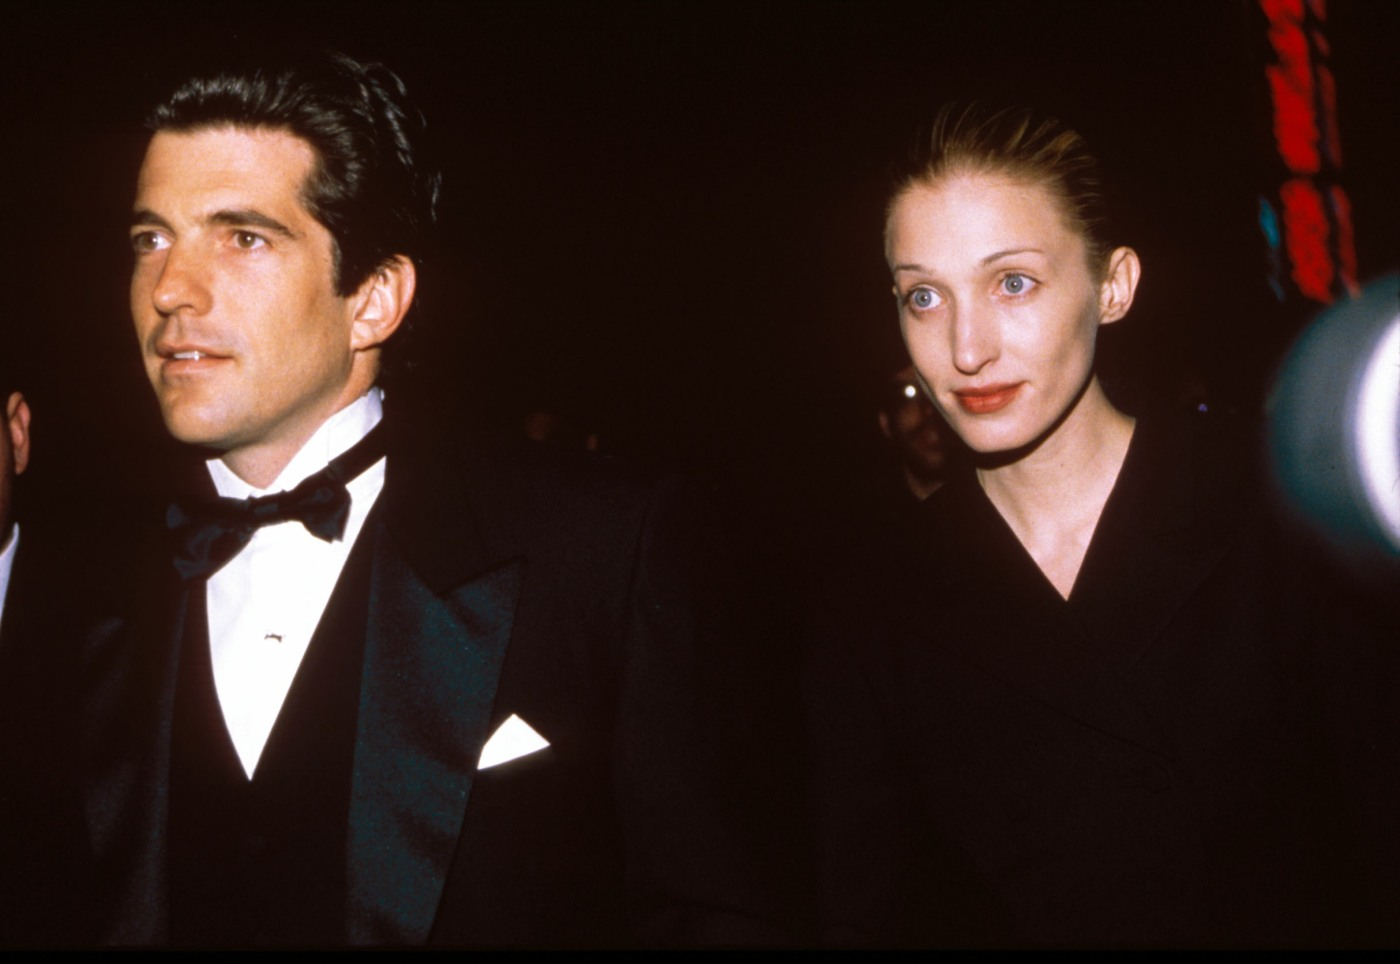 JOHN F KENNEDY JR ARCHIVE IMAGES